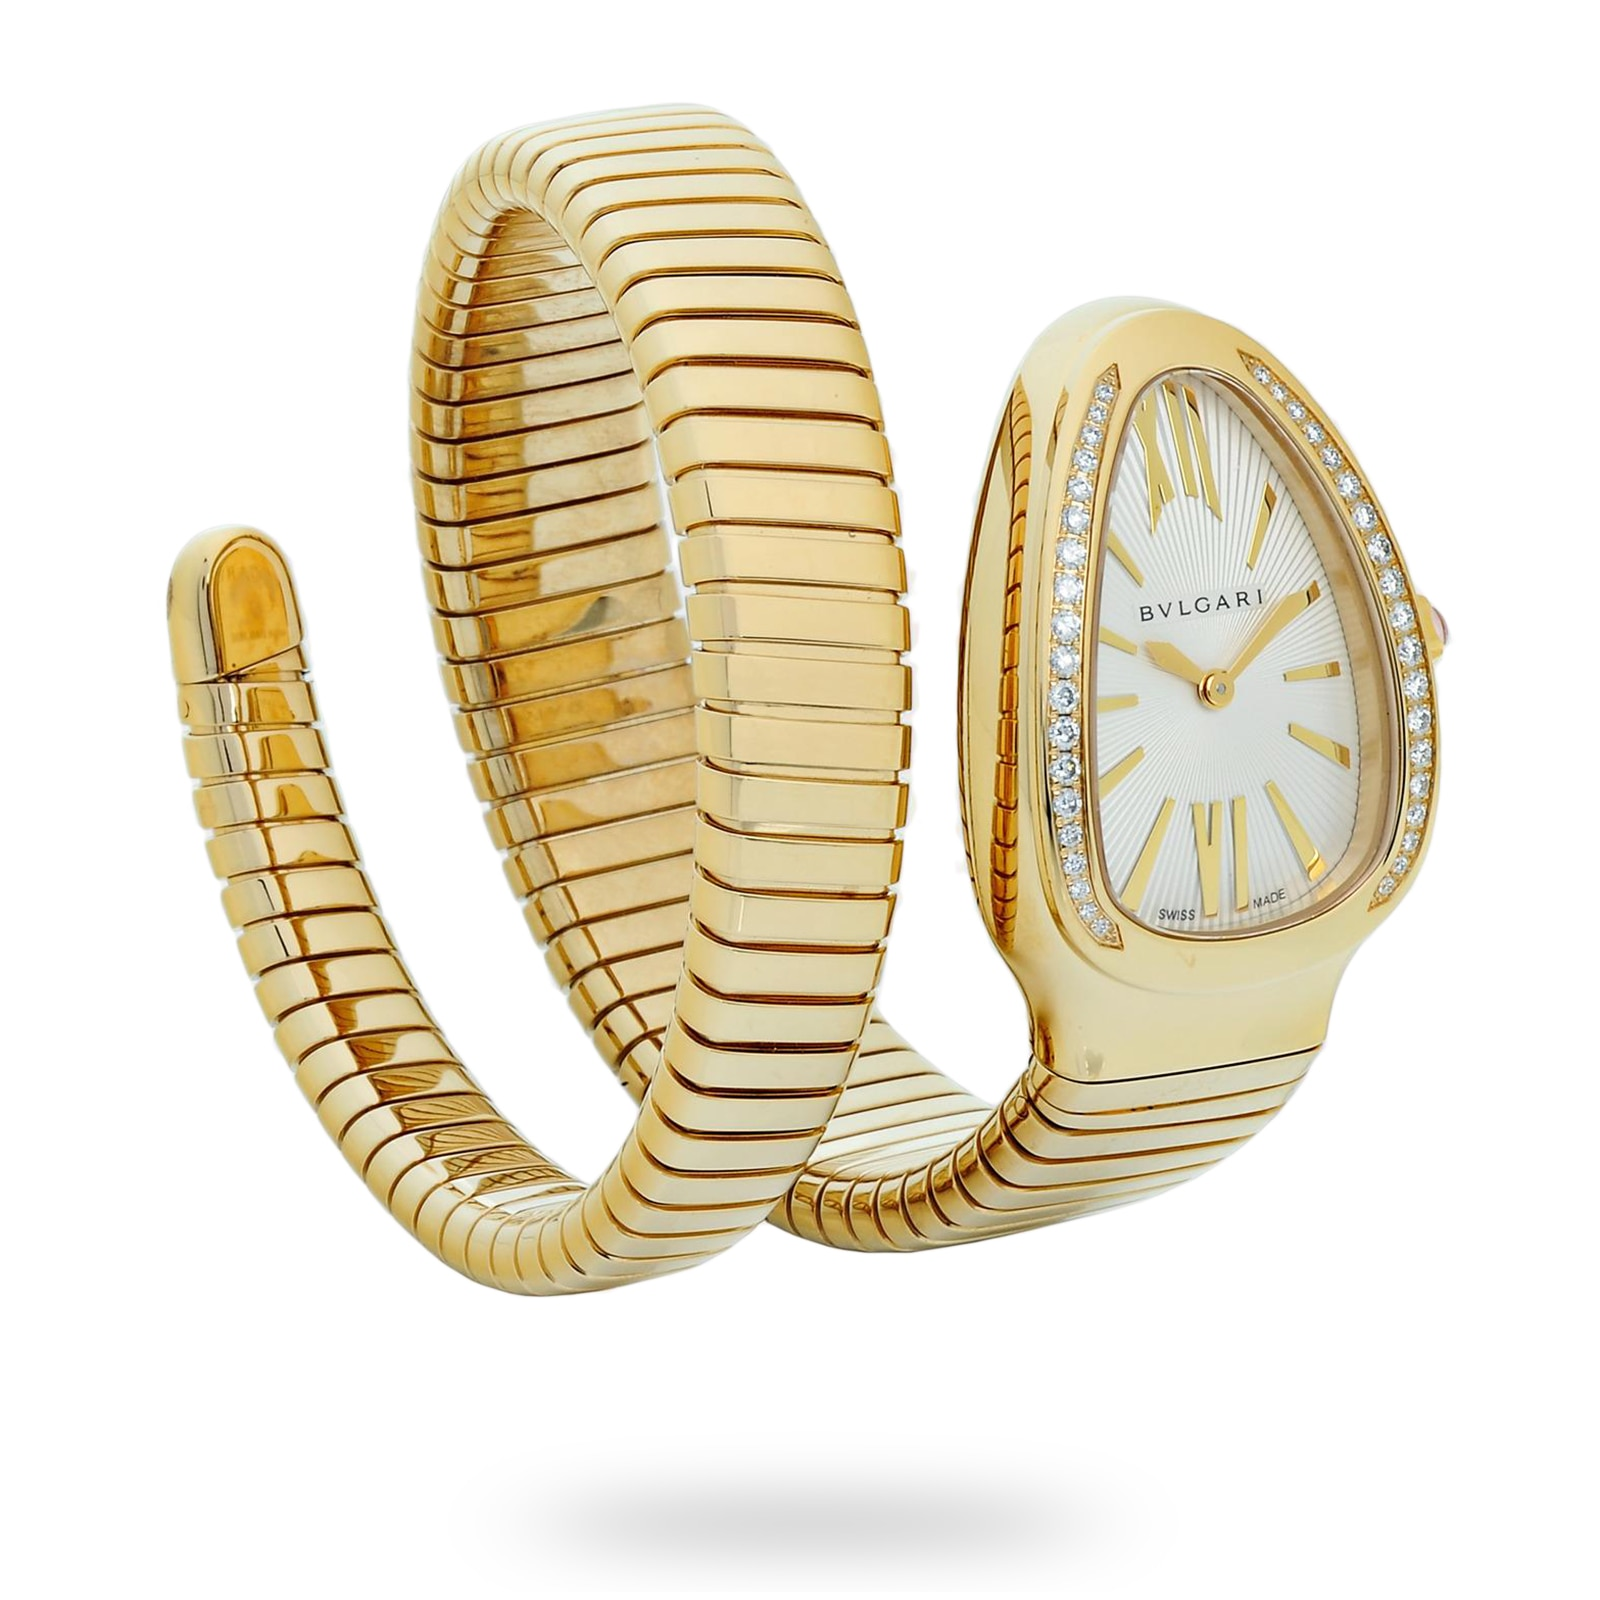 BVLGARI Serpenti Tubogas 101924 Ladies Watch